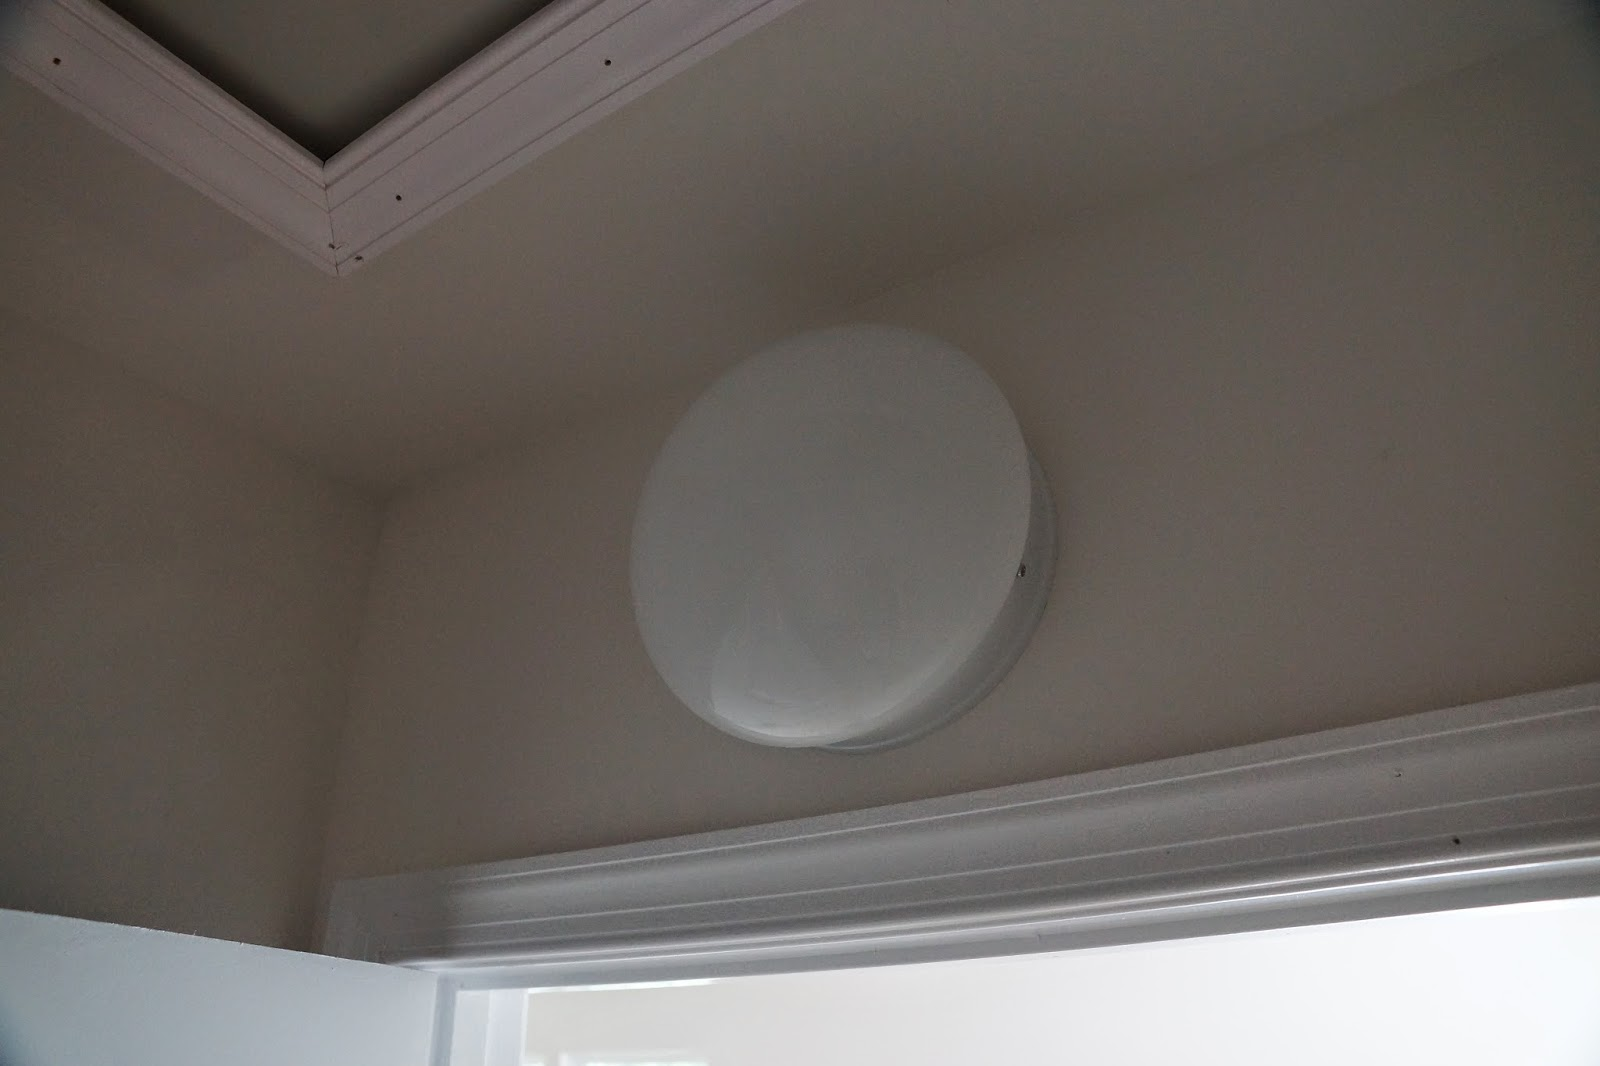 A picture of the simple dome light fixture used in closets